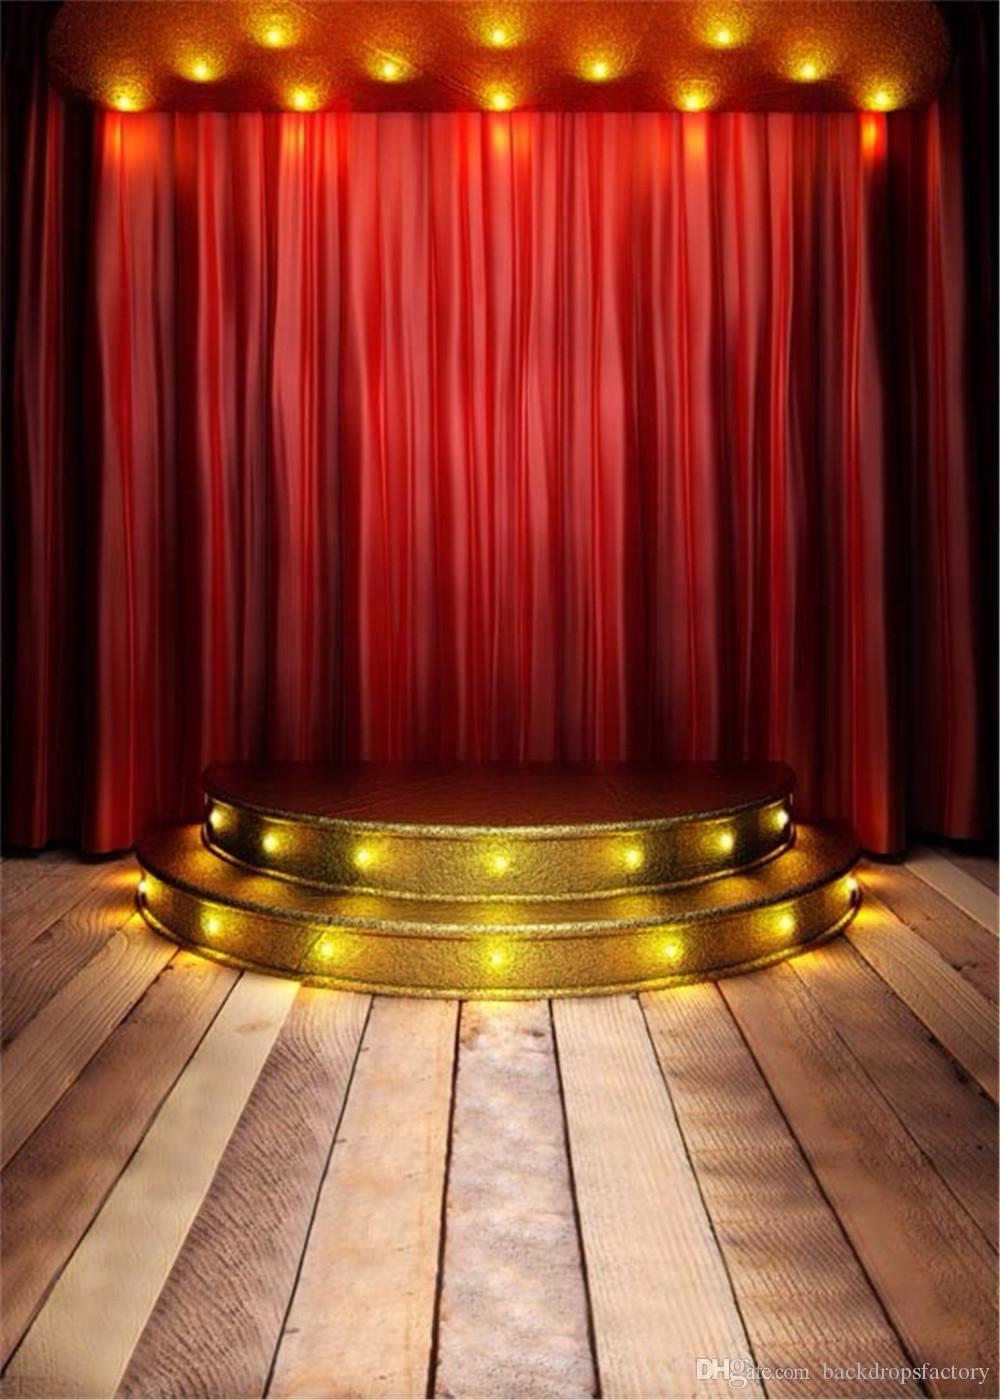 2018 Red Curtain Stage Photography Background Wood Flooring Gold Stairs With Light Children Kids Studio Photo Booth Backdrop Wedding From Backdropsfactory ... & 2018 Red Curtain Stage Photography Background Wood Flooring Gold ...